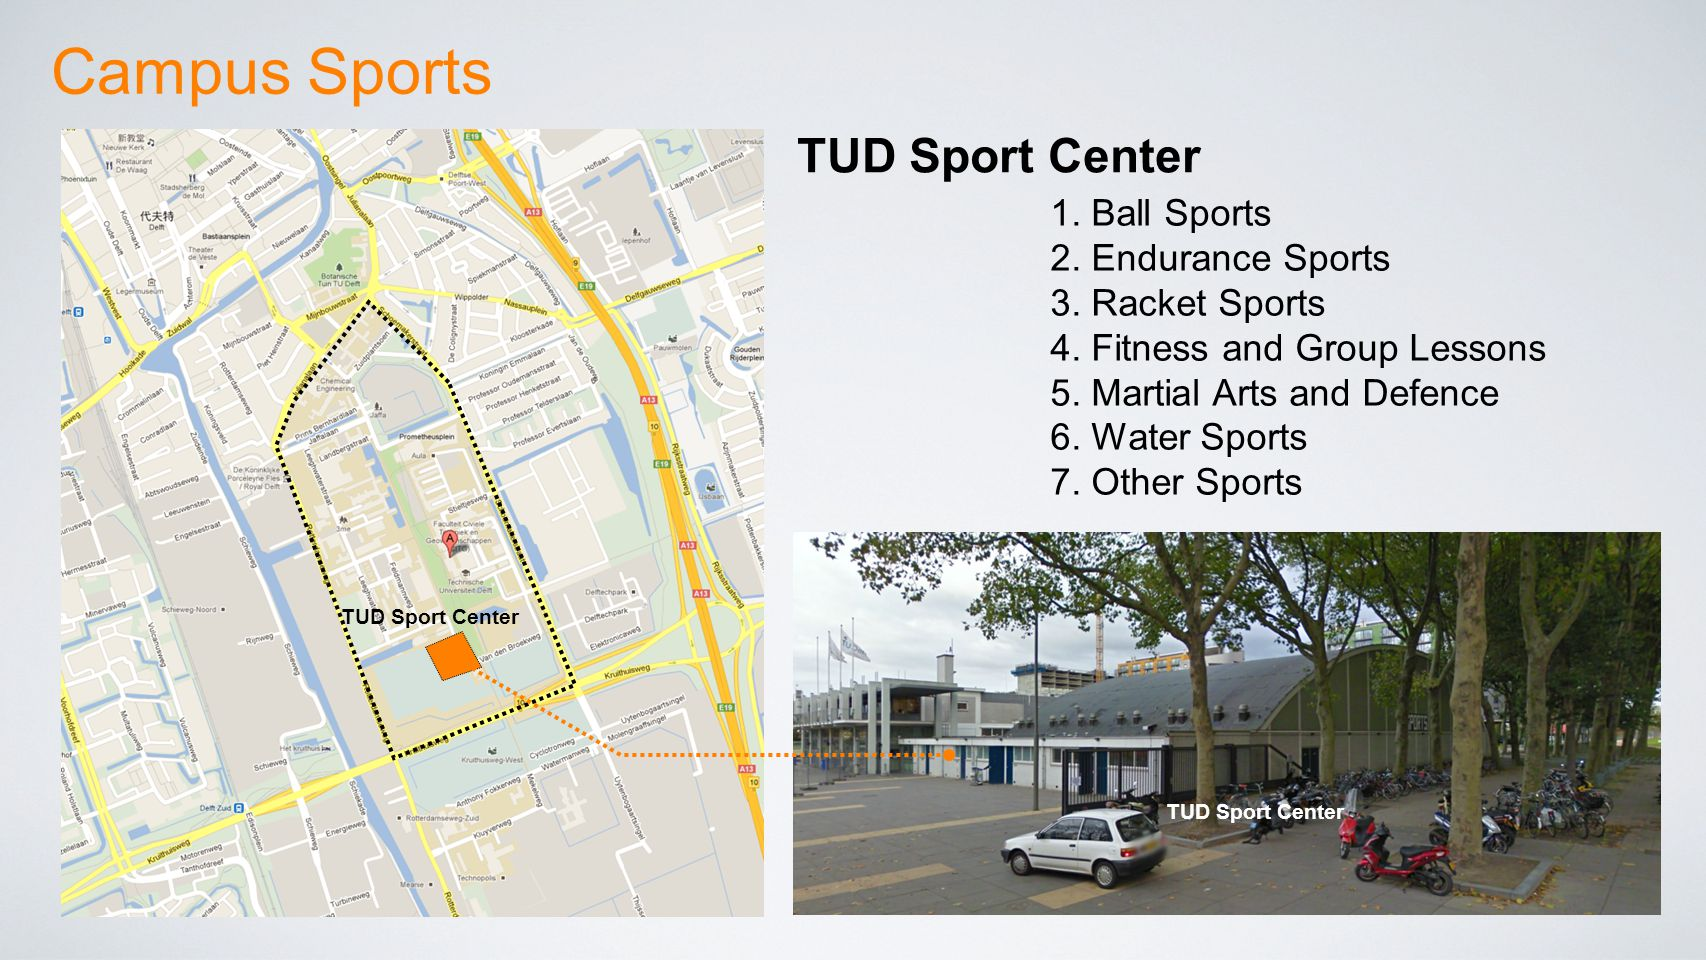 Campus Sports TUD Sport Center 1. Ball Sports 2. Endurance Sports 3. Racket Sports 4. Fitness and Group Lessons 5. Martial Arts and Defence 6. Water S